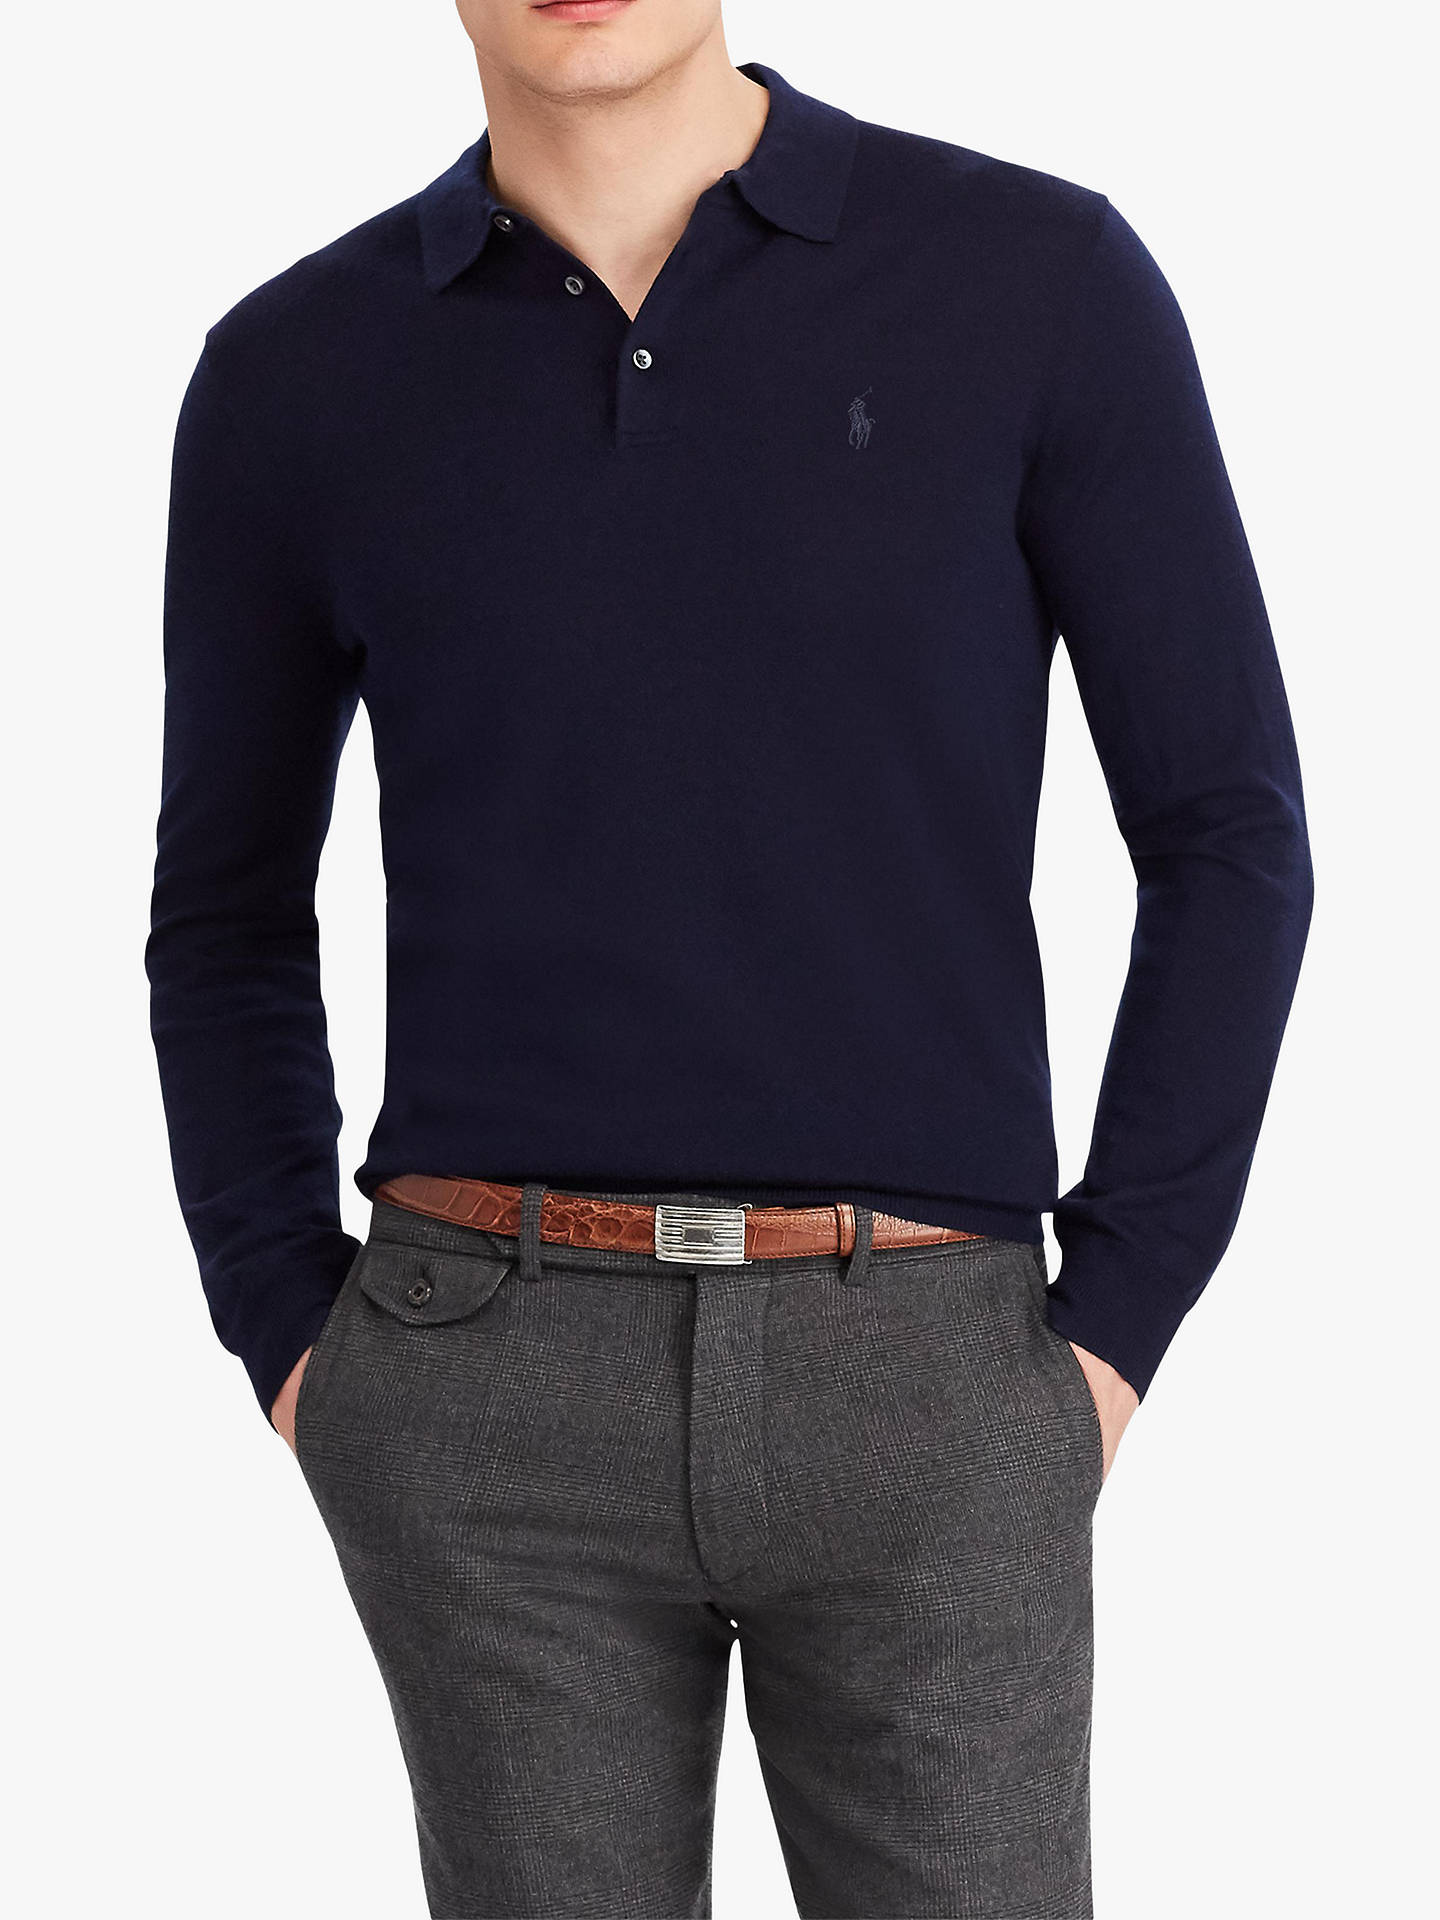 Polo Ralph Lauren Long Sleeve Knitted Polo Shirt At John Lewis